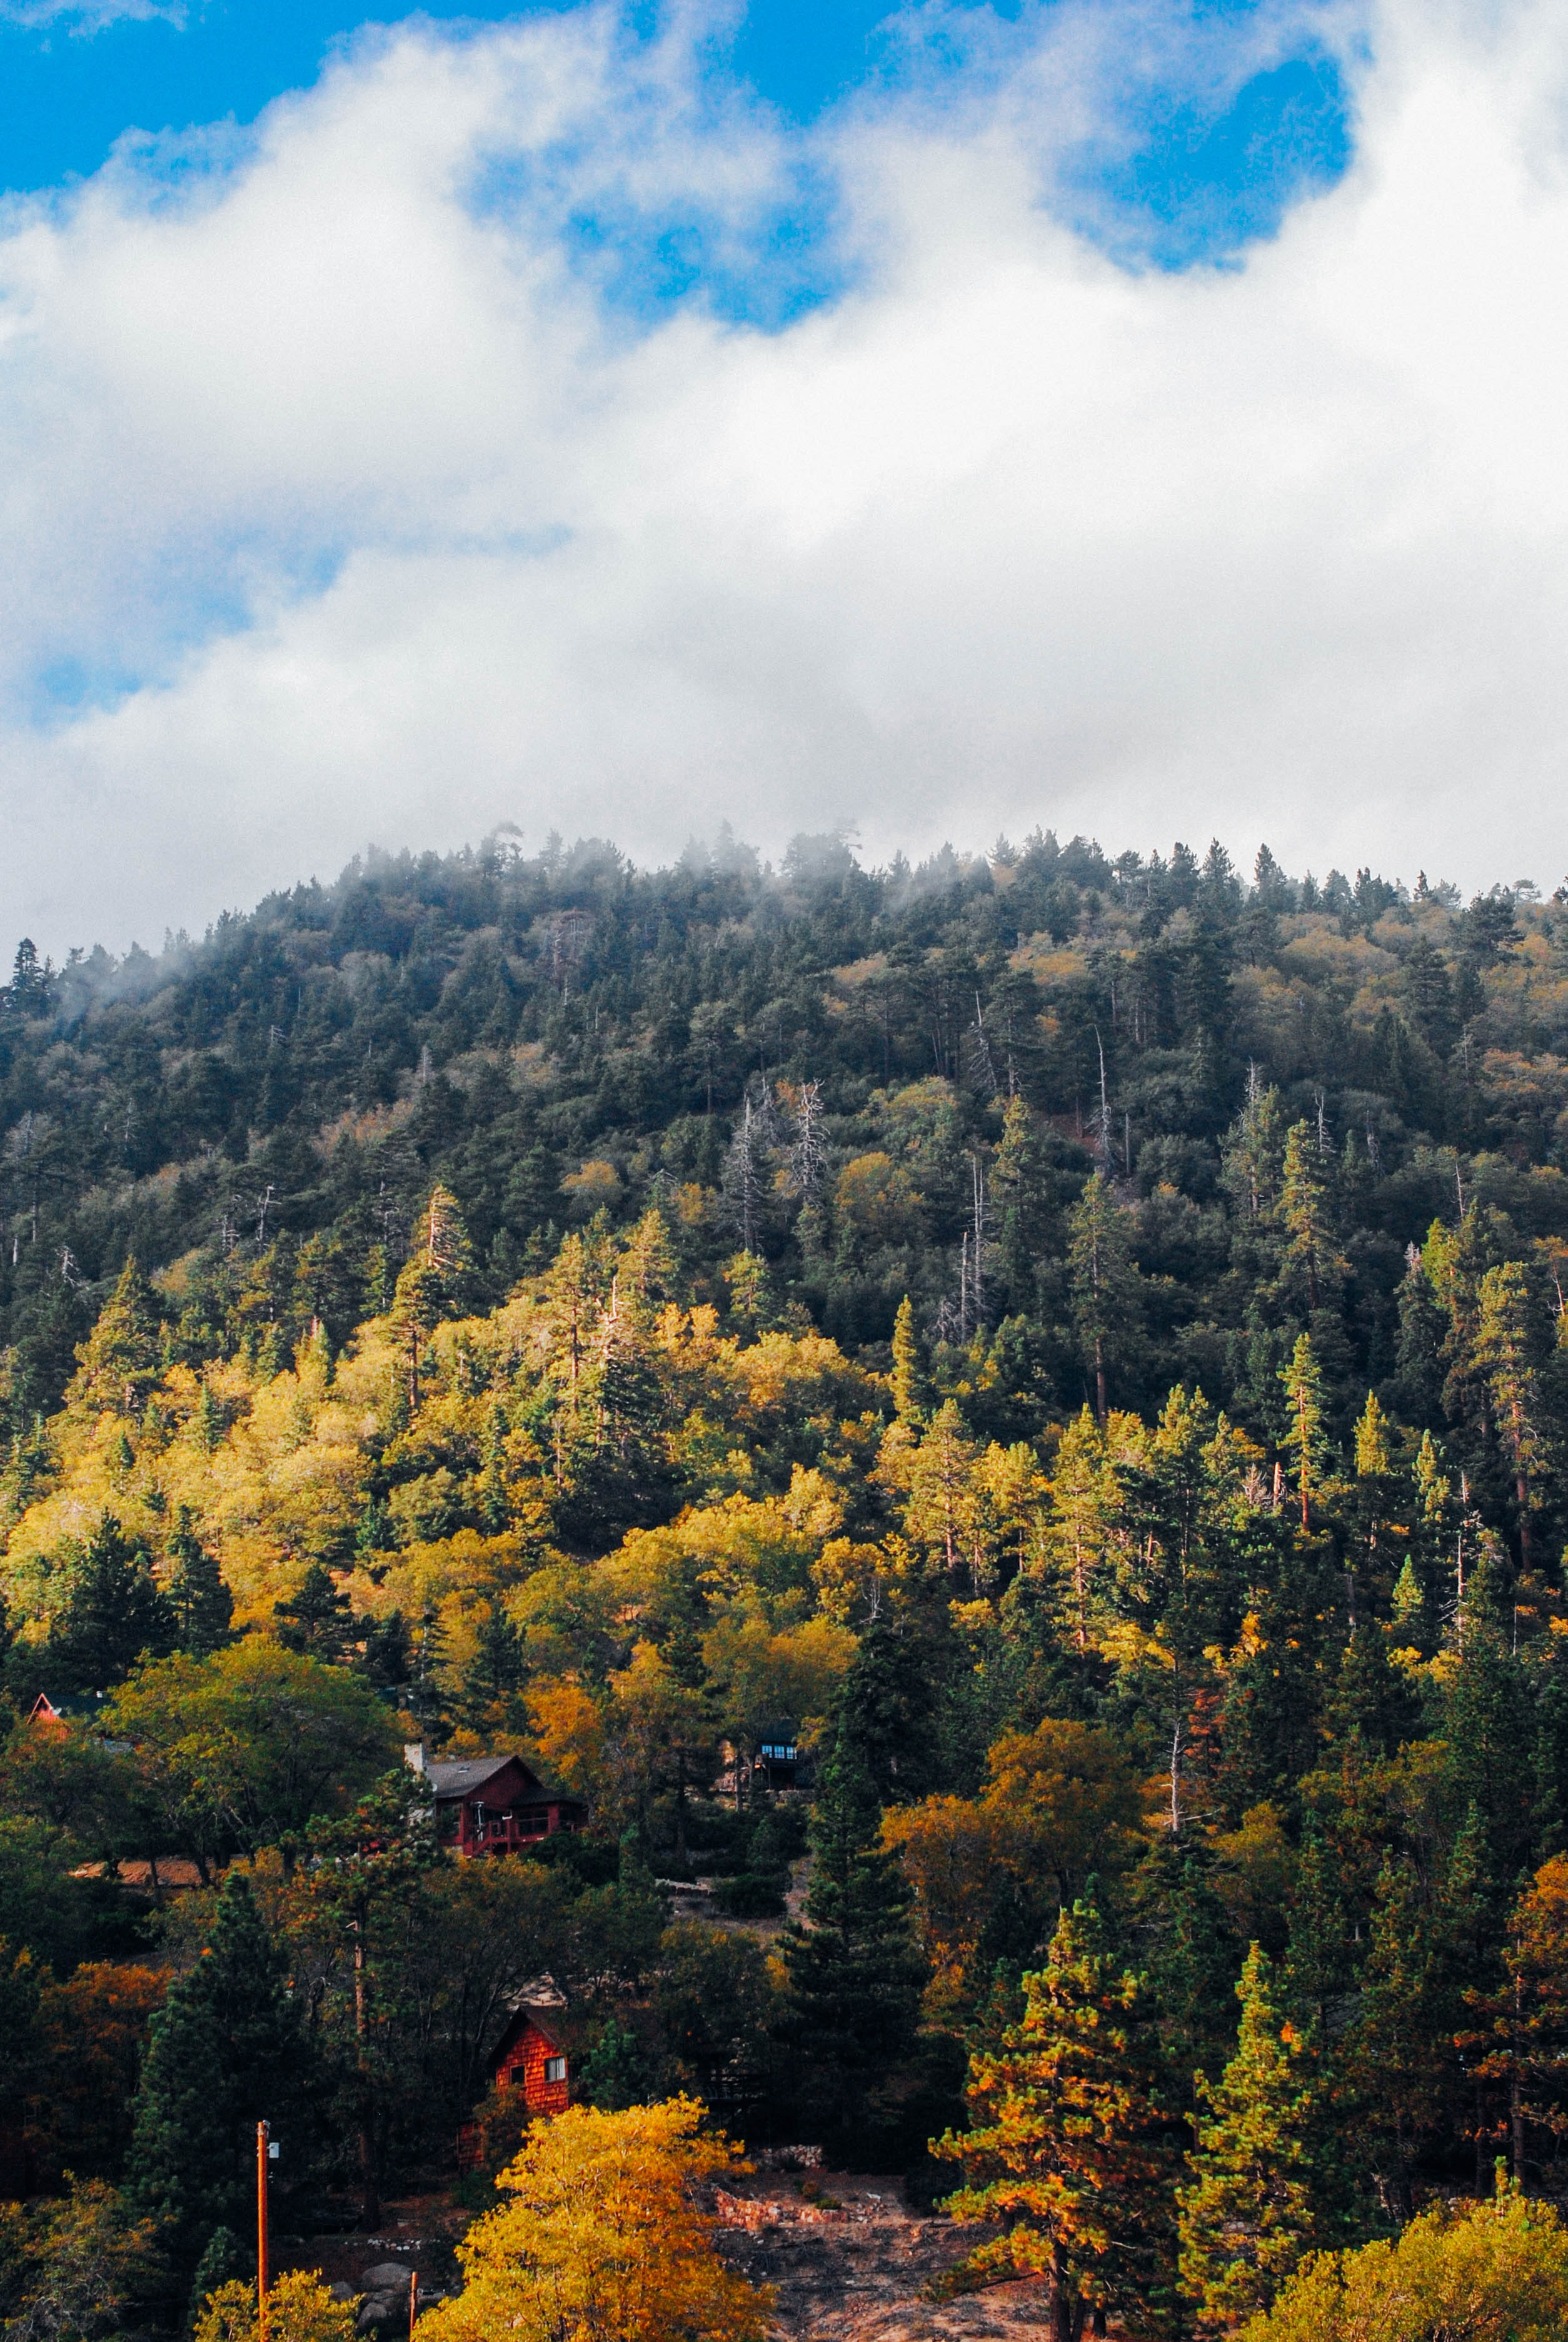 Chalets on a forested slope near Big Bear Lake in the autumn